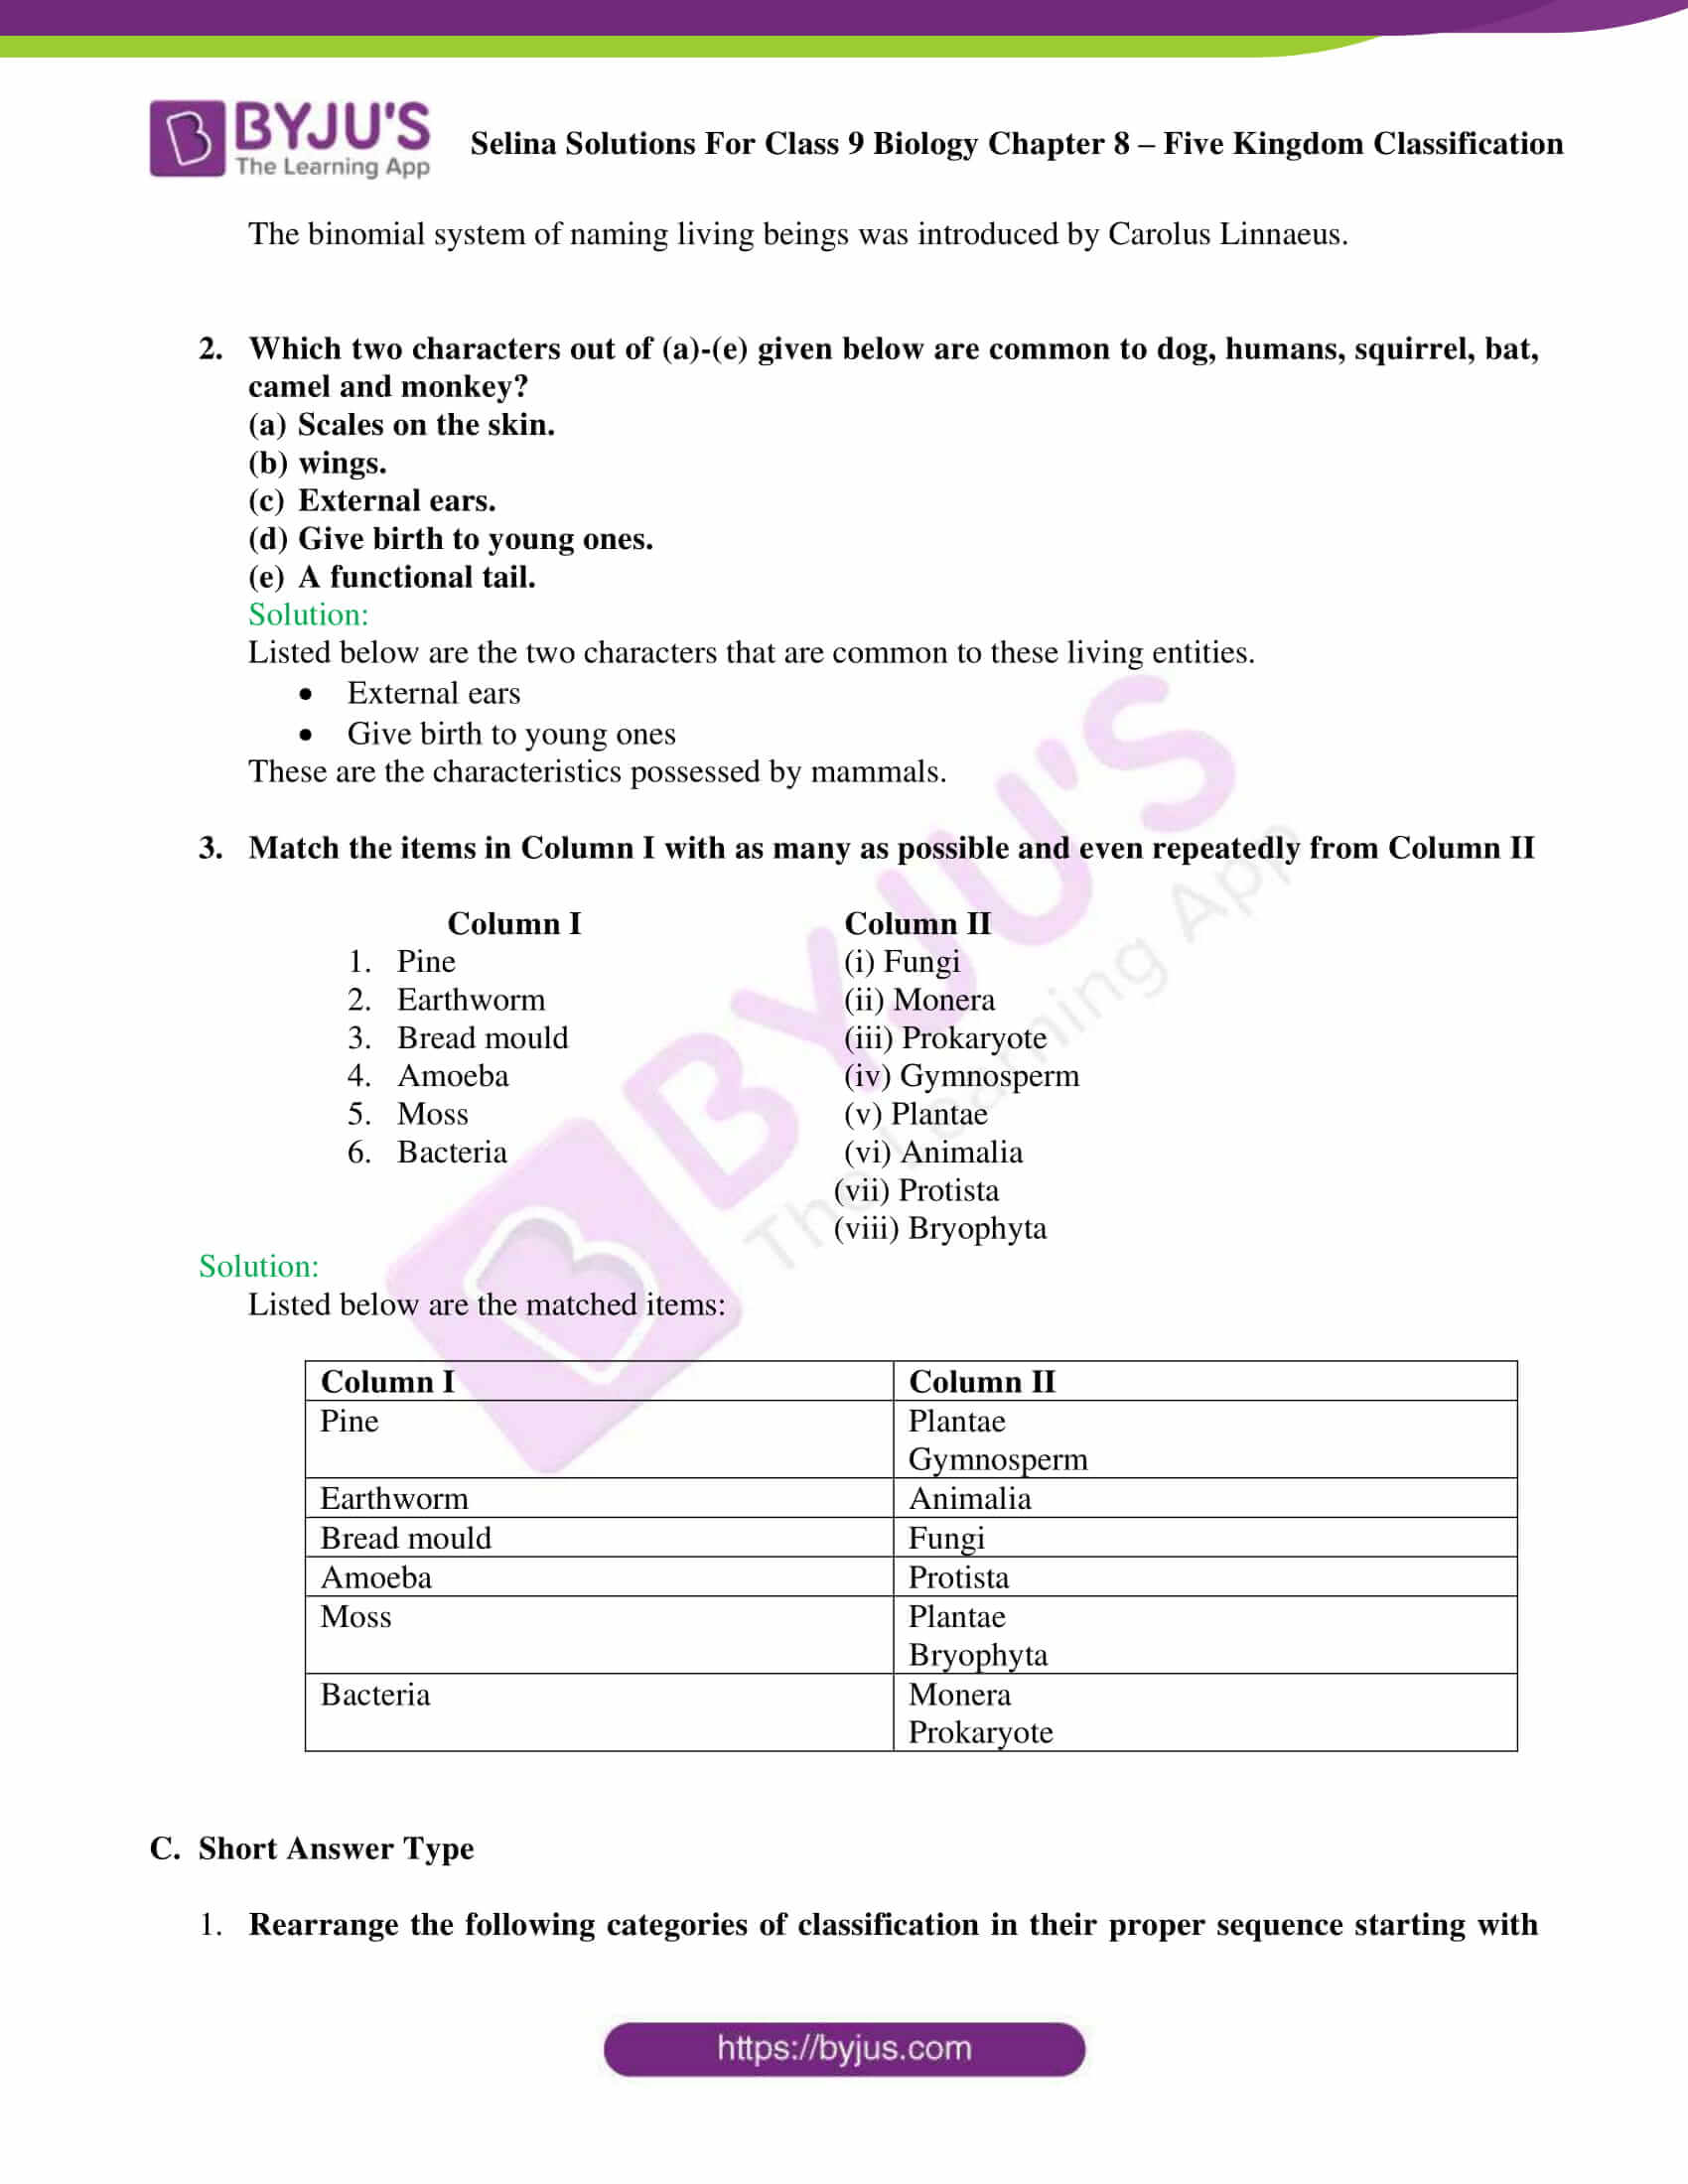 Selina Solutions For Class 9 Biology Chapter 8 Five Kingdom Classification part 06